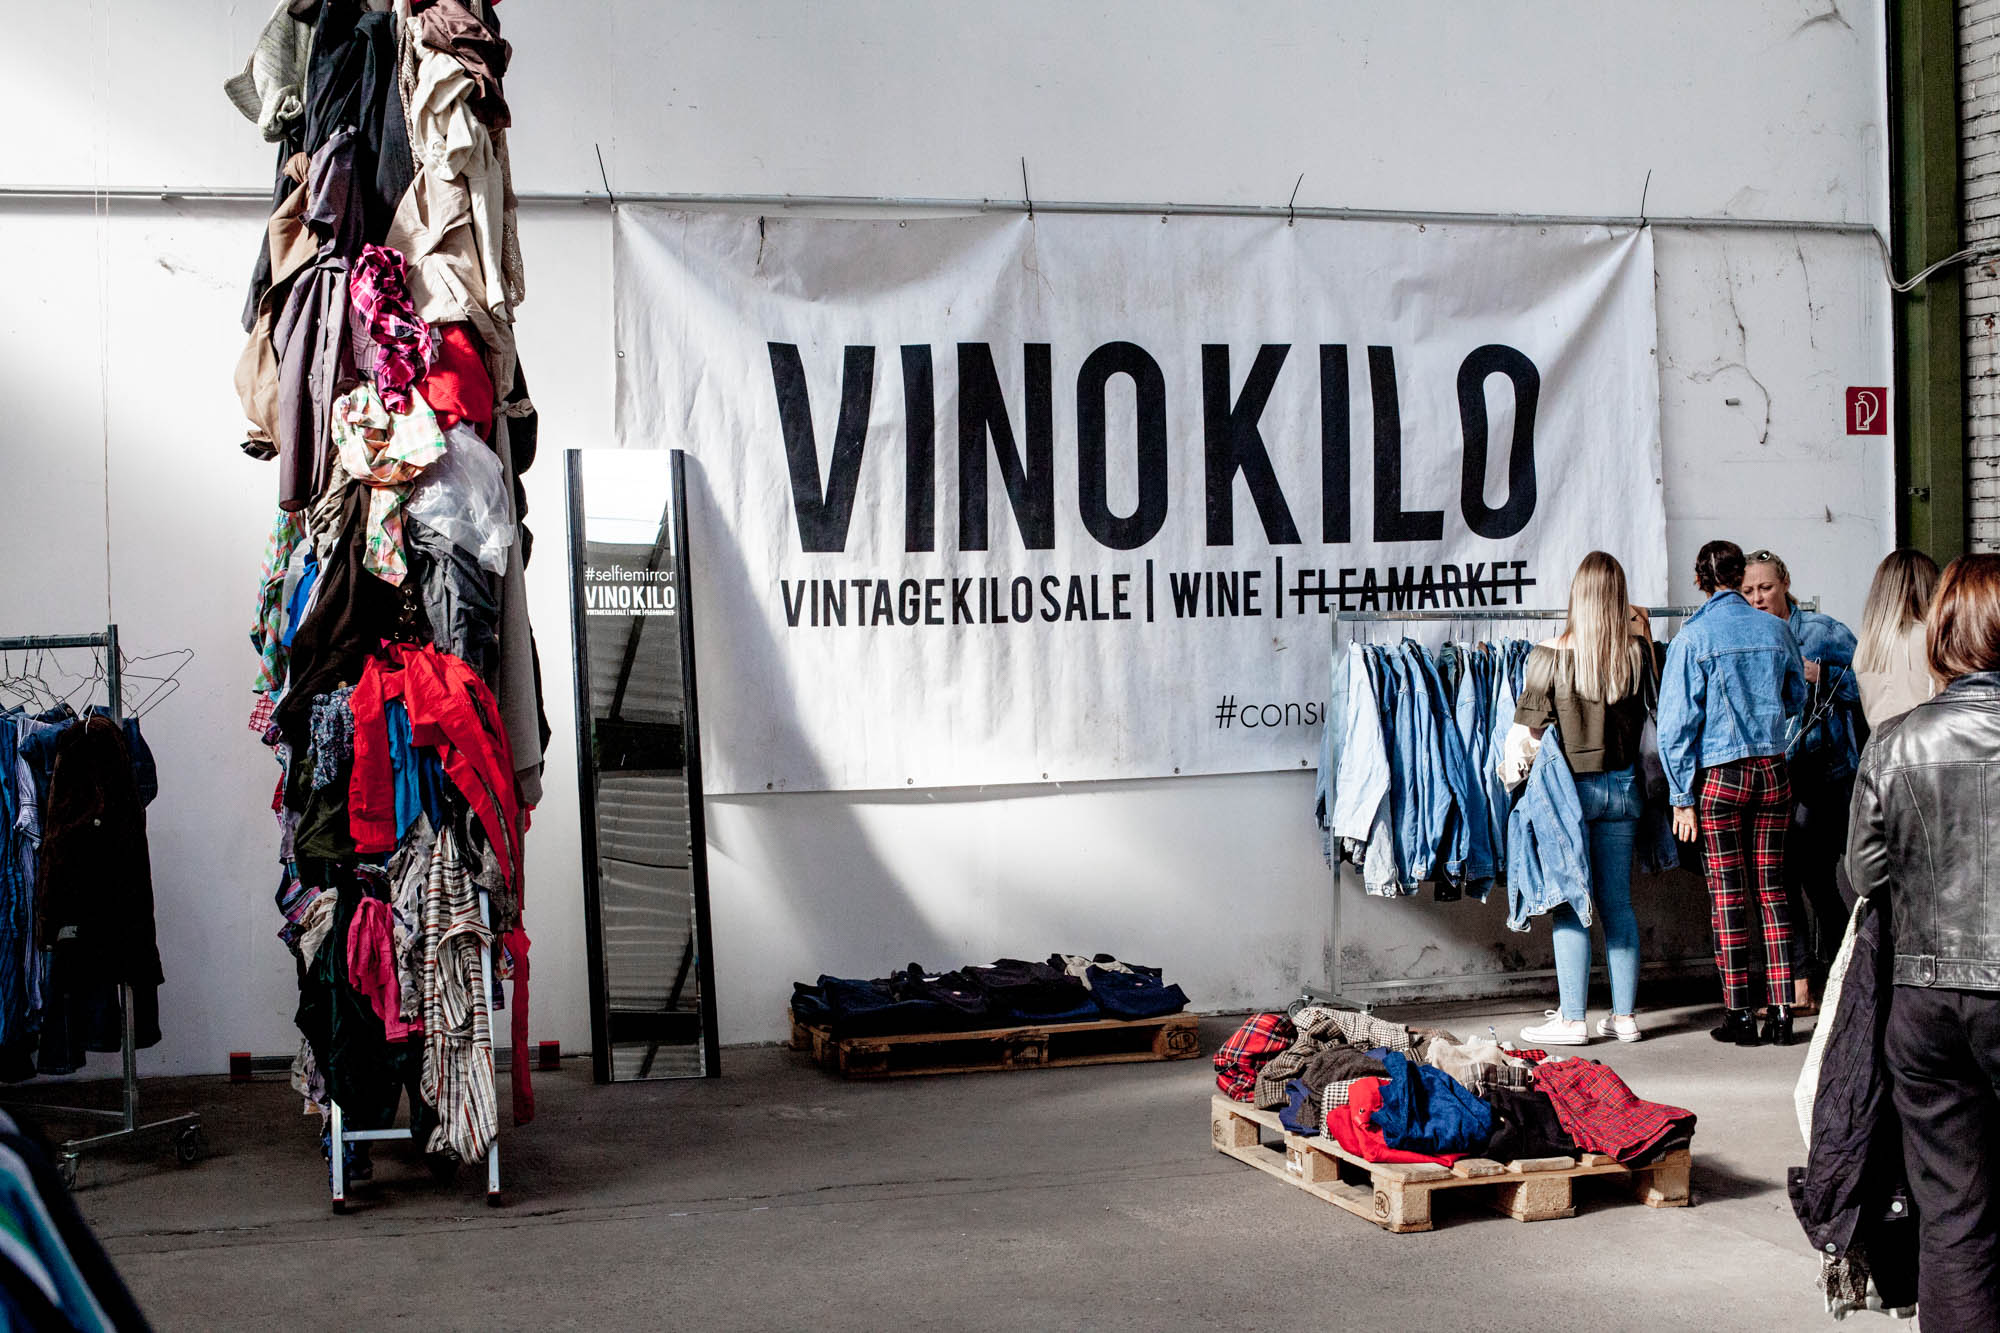 A typical pop-up event by VinoKilo, where clothes are sold by the kilo